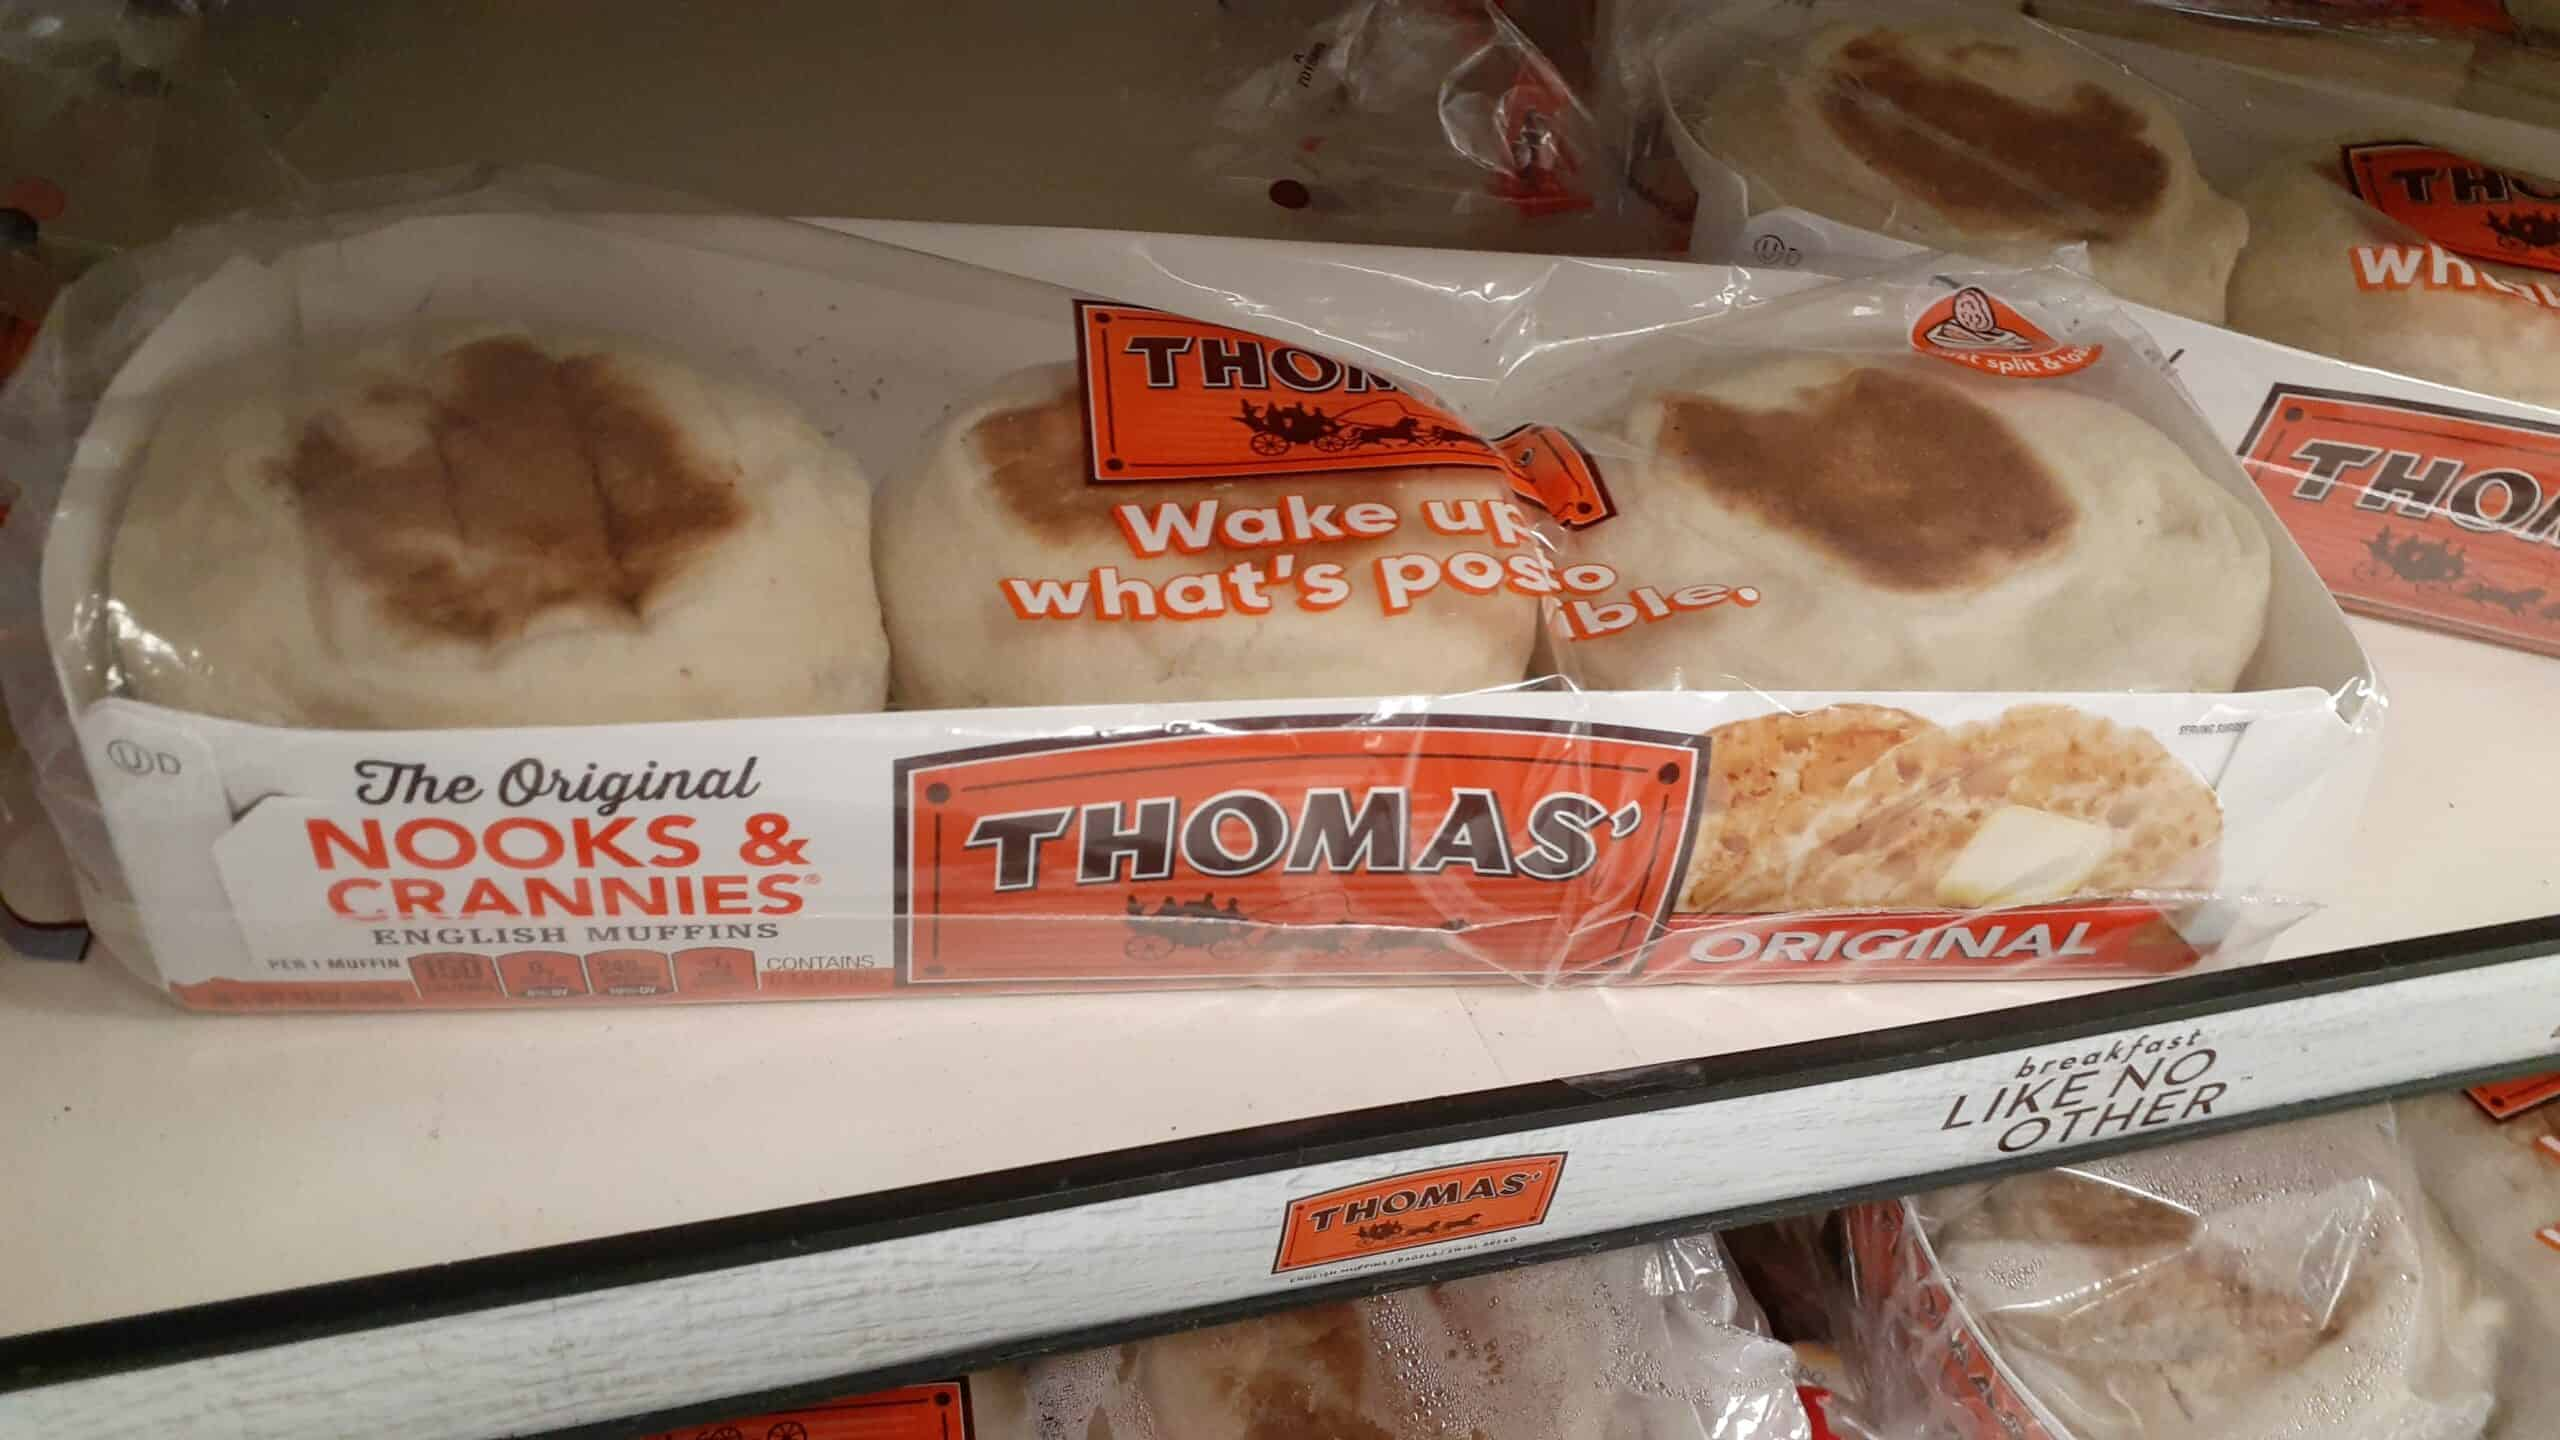 Thomas' English Muffins at Shoprite